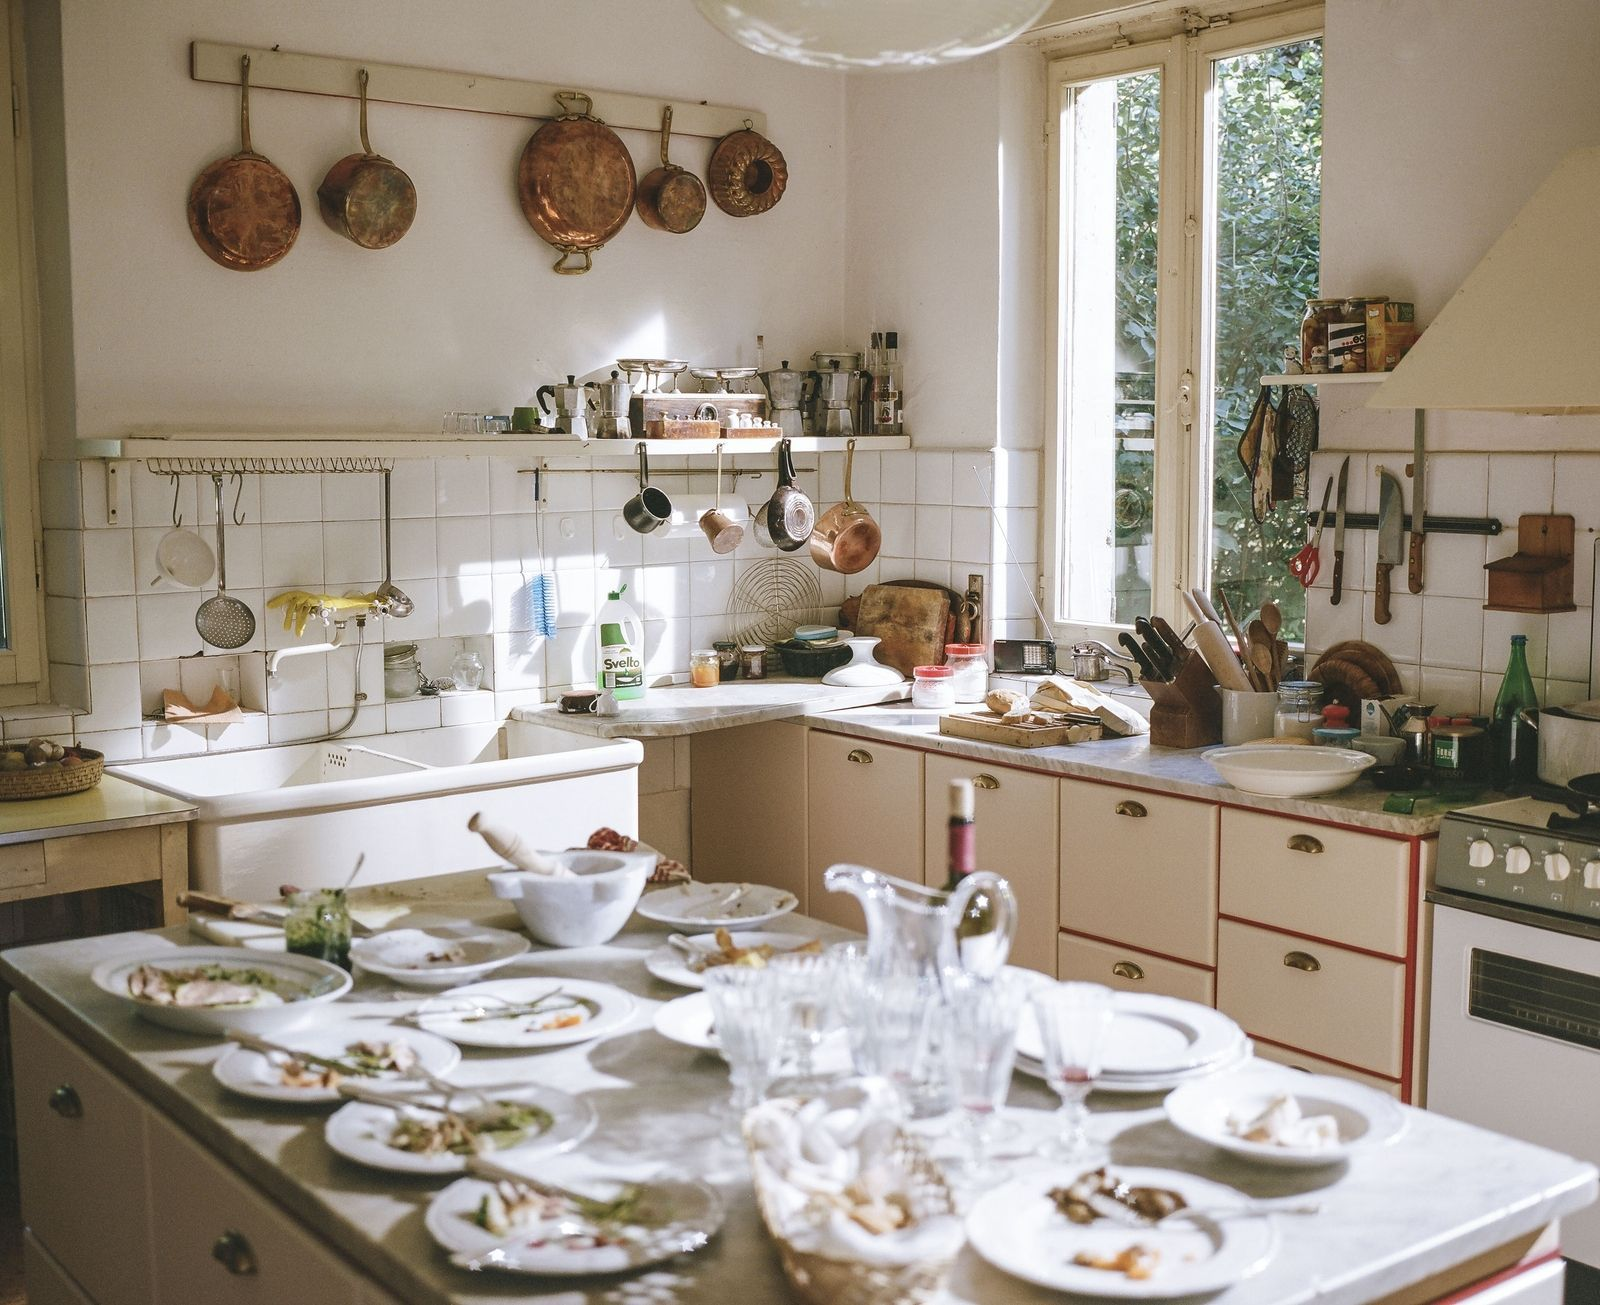 Kitchen Set Name Tour The 17th Century Italian Villa In Director Luca